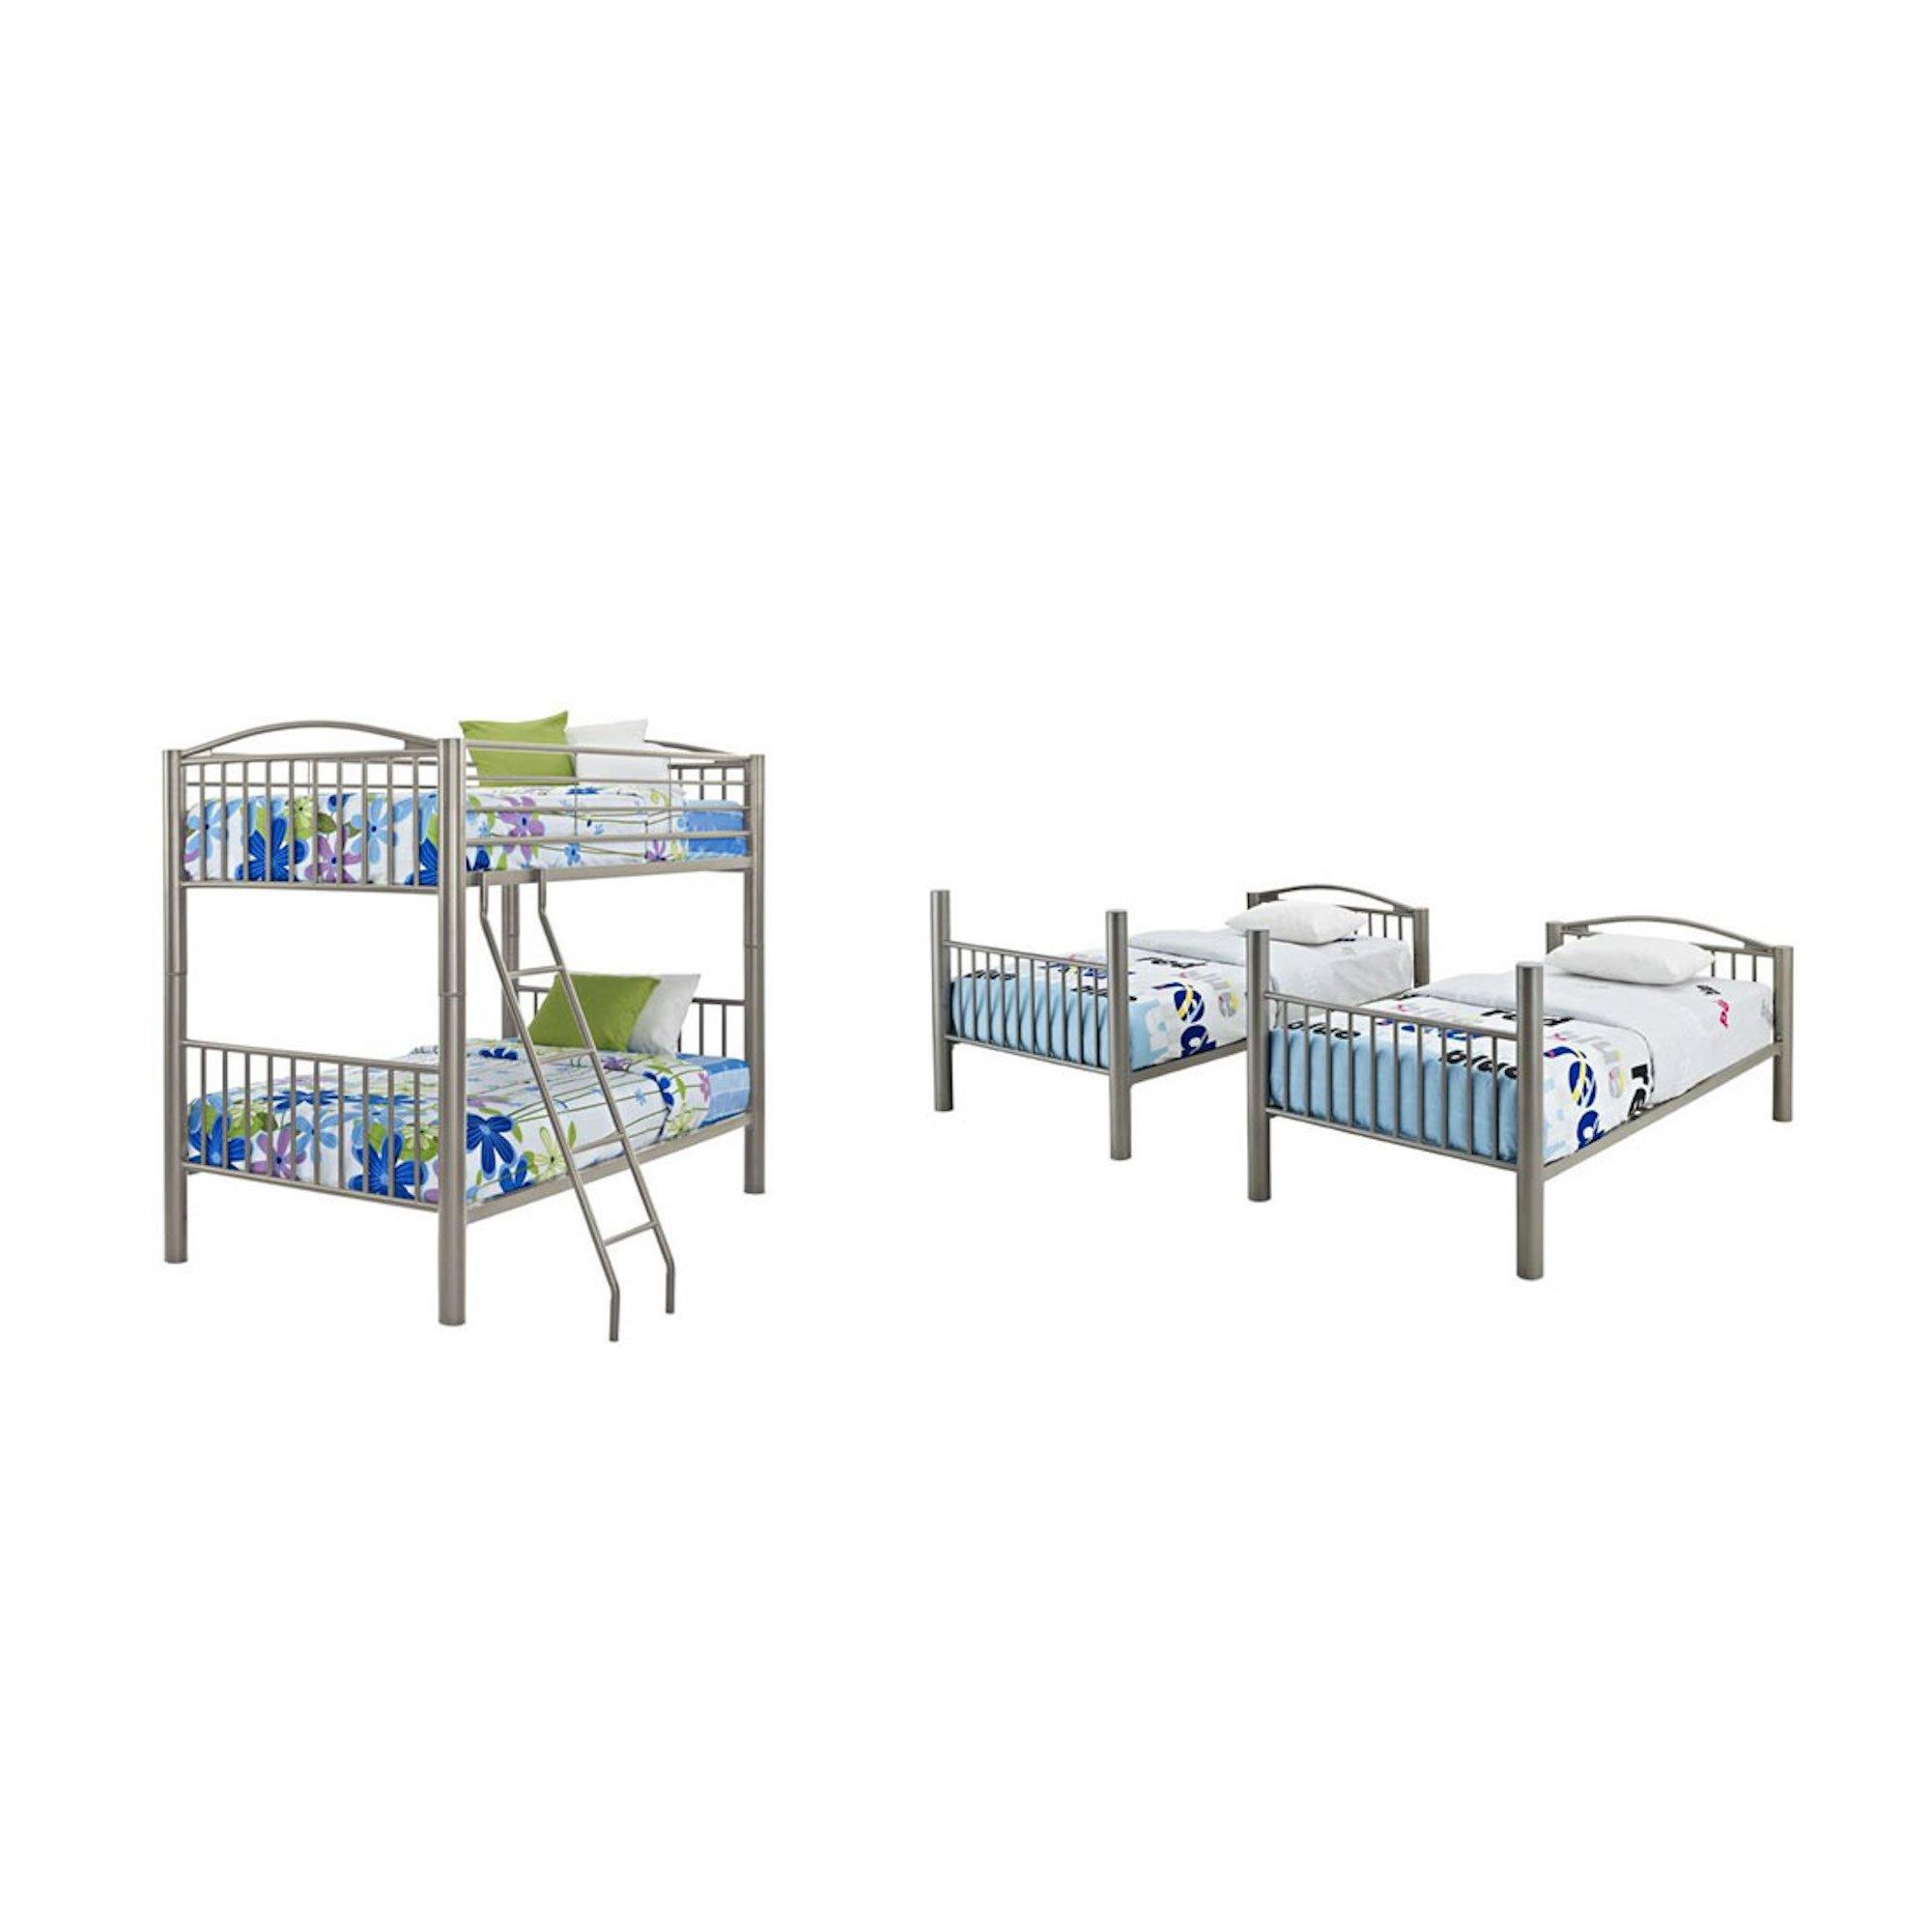 Rent To Own Powell 5 Piece Twin Metal Bunk Bed Mattress Set At Aaron S Today